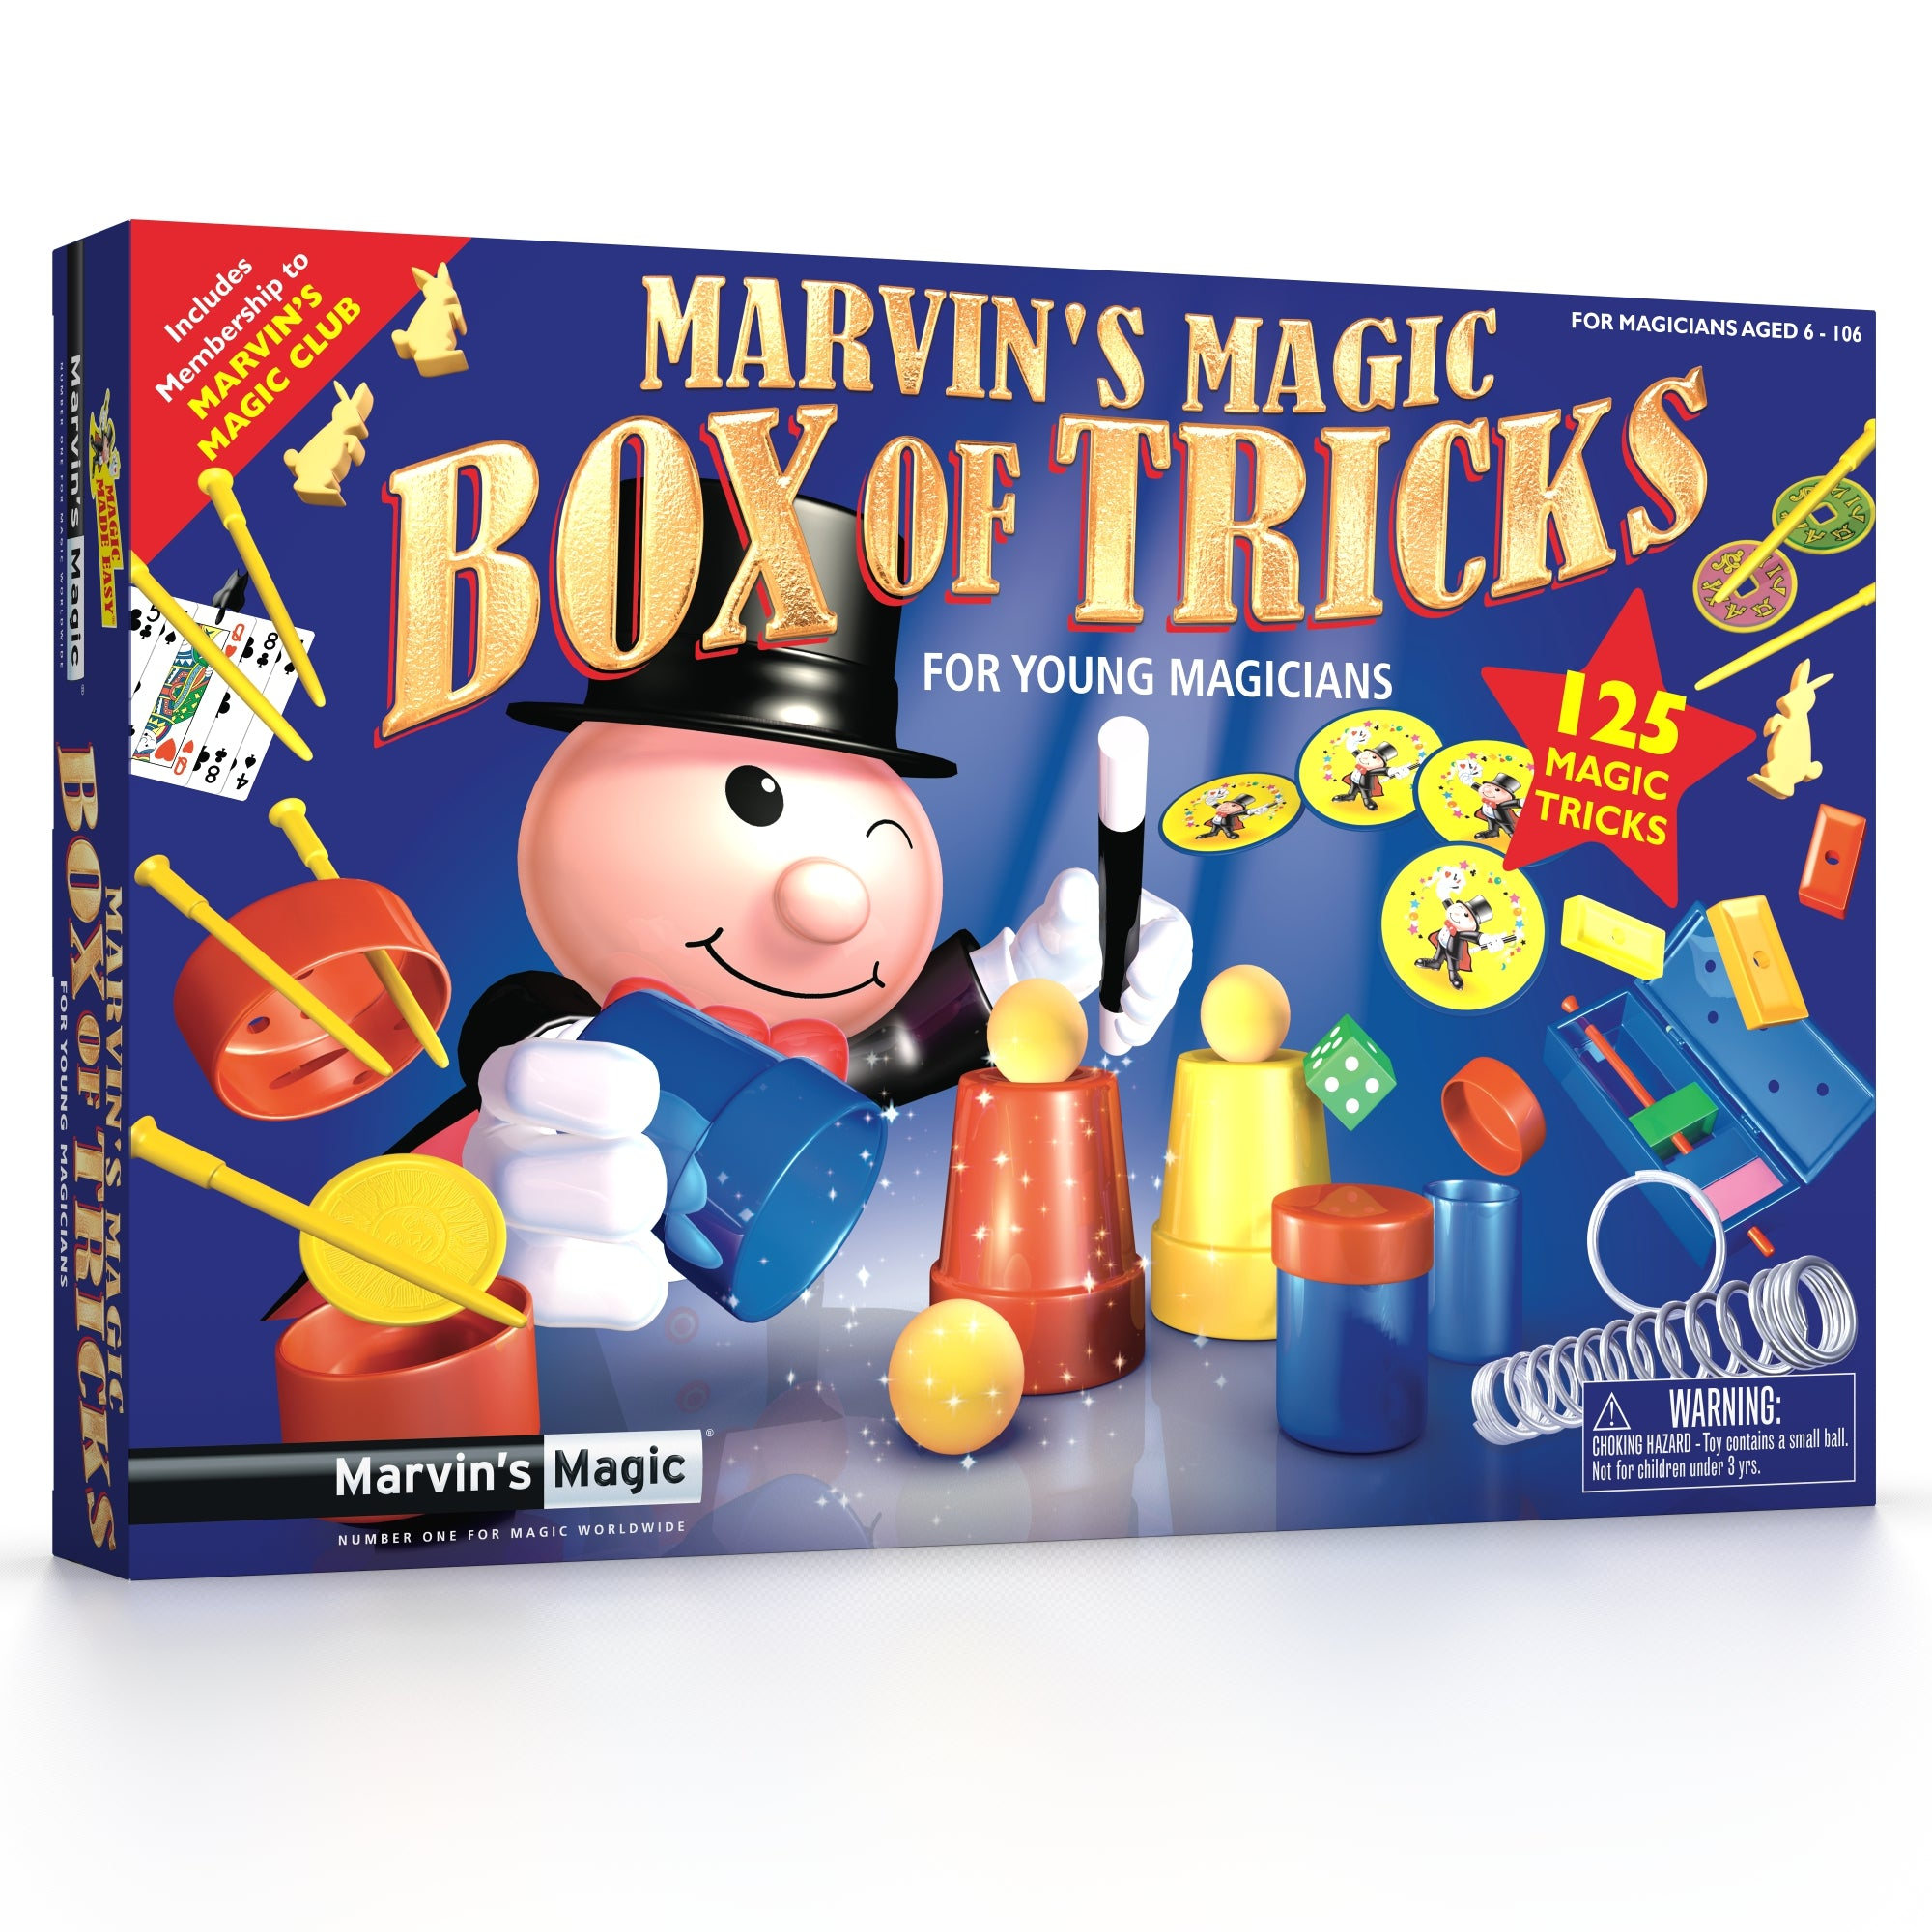 Marvins Magic - Marvin's Amazing Magic 125 Tricks